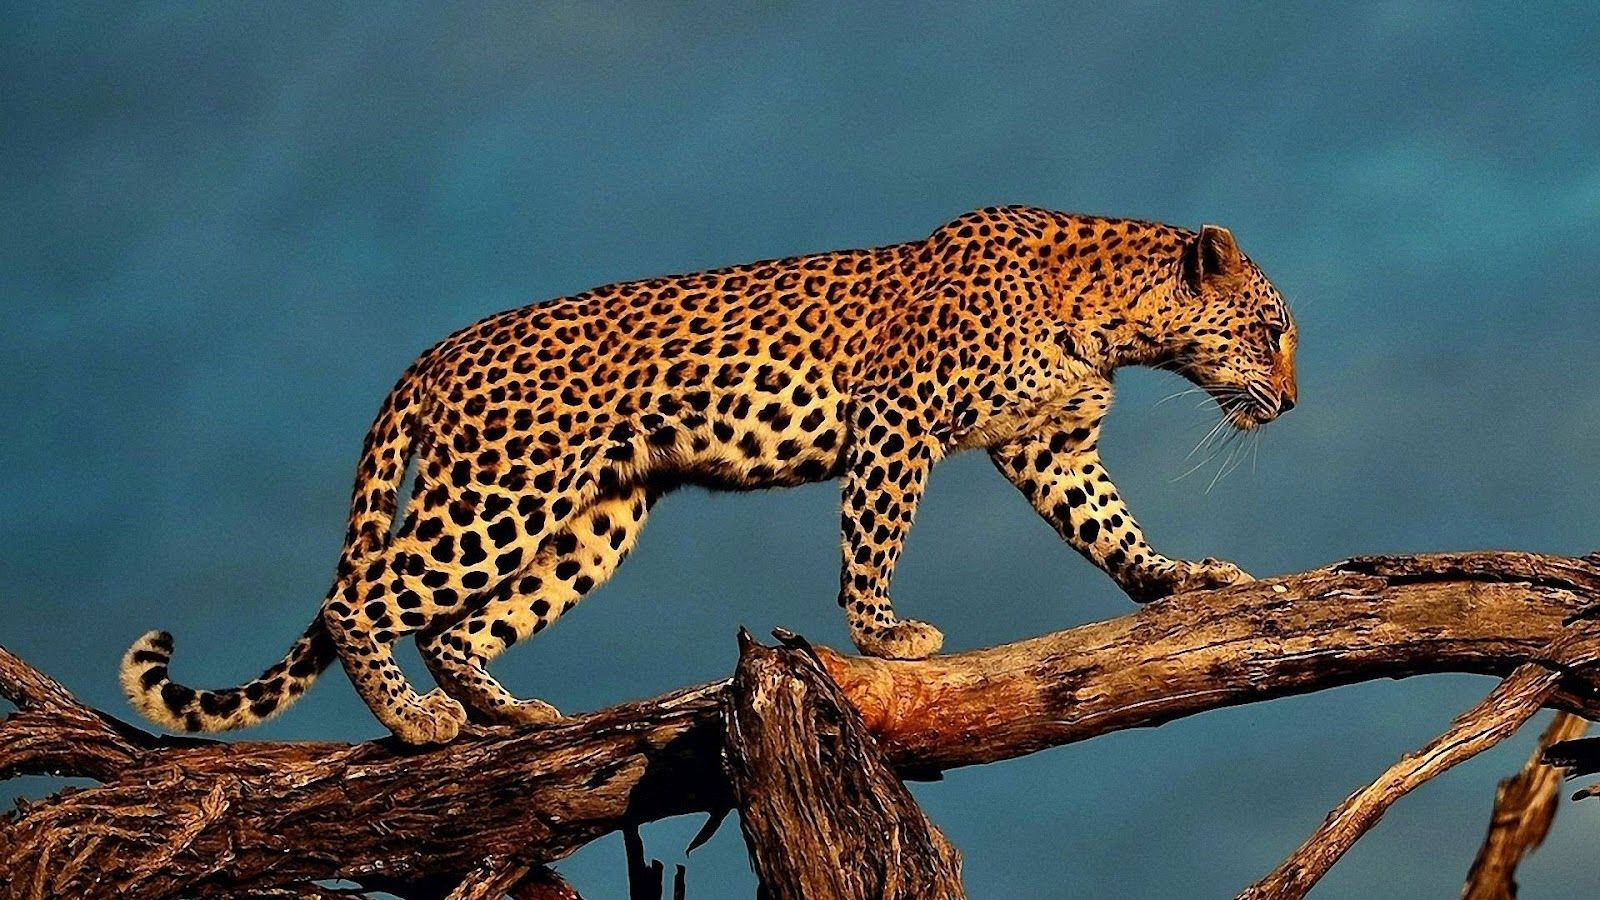 leopard Leopard On Tree big cats Pinterest Leopards